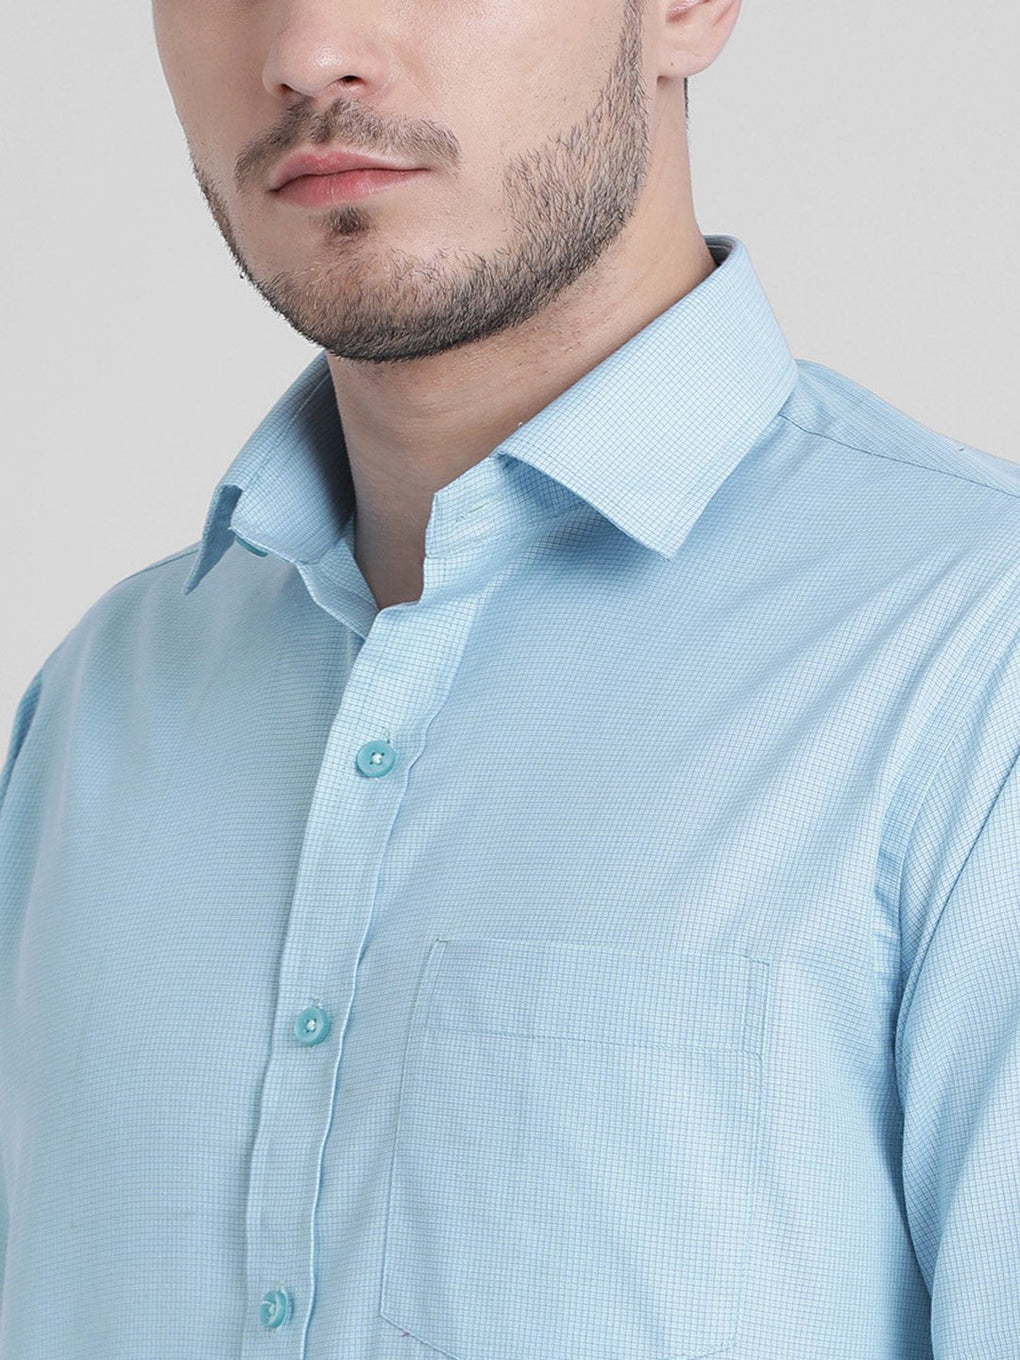 cobb green solid formal shirt